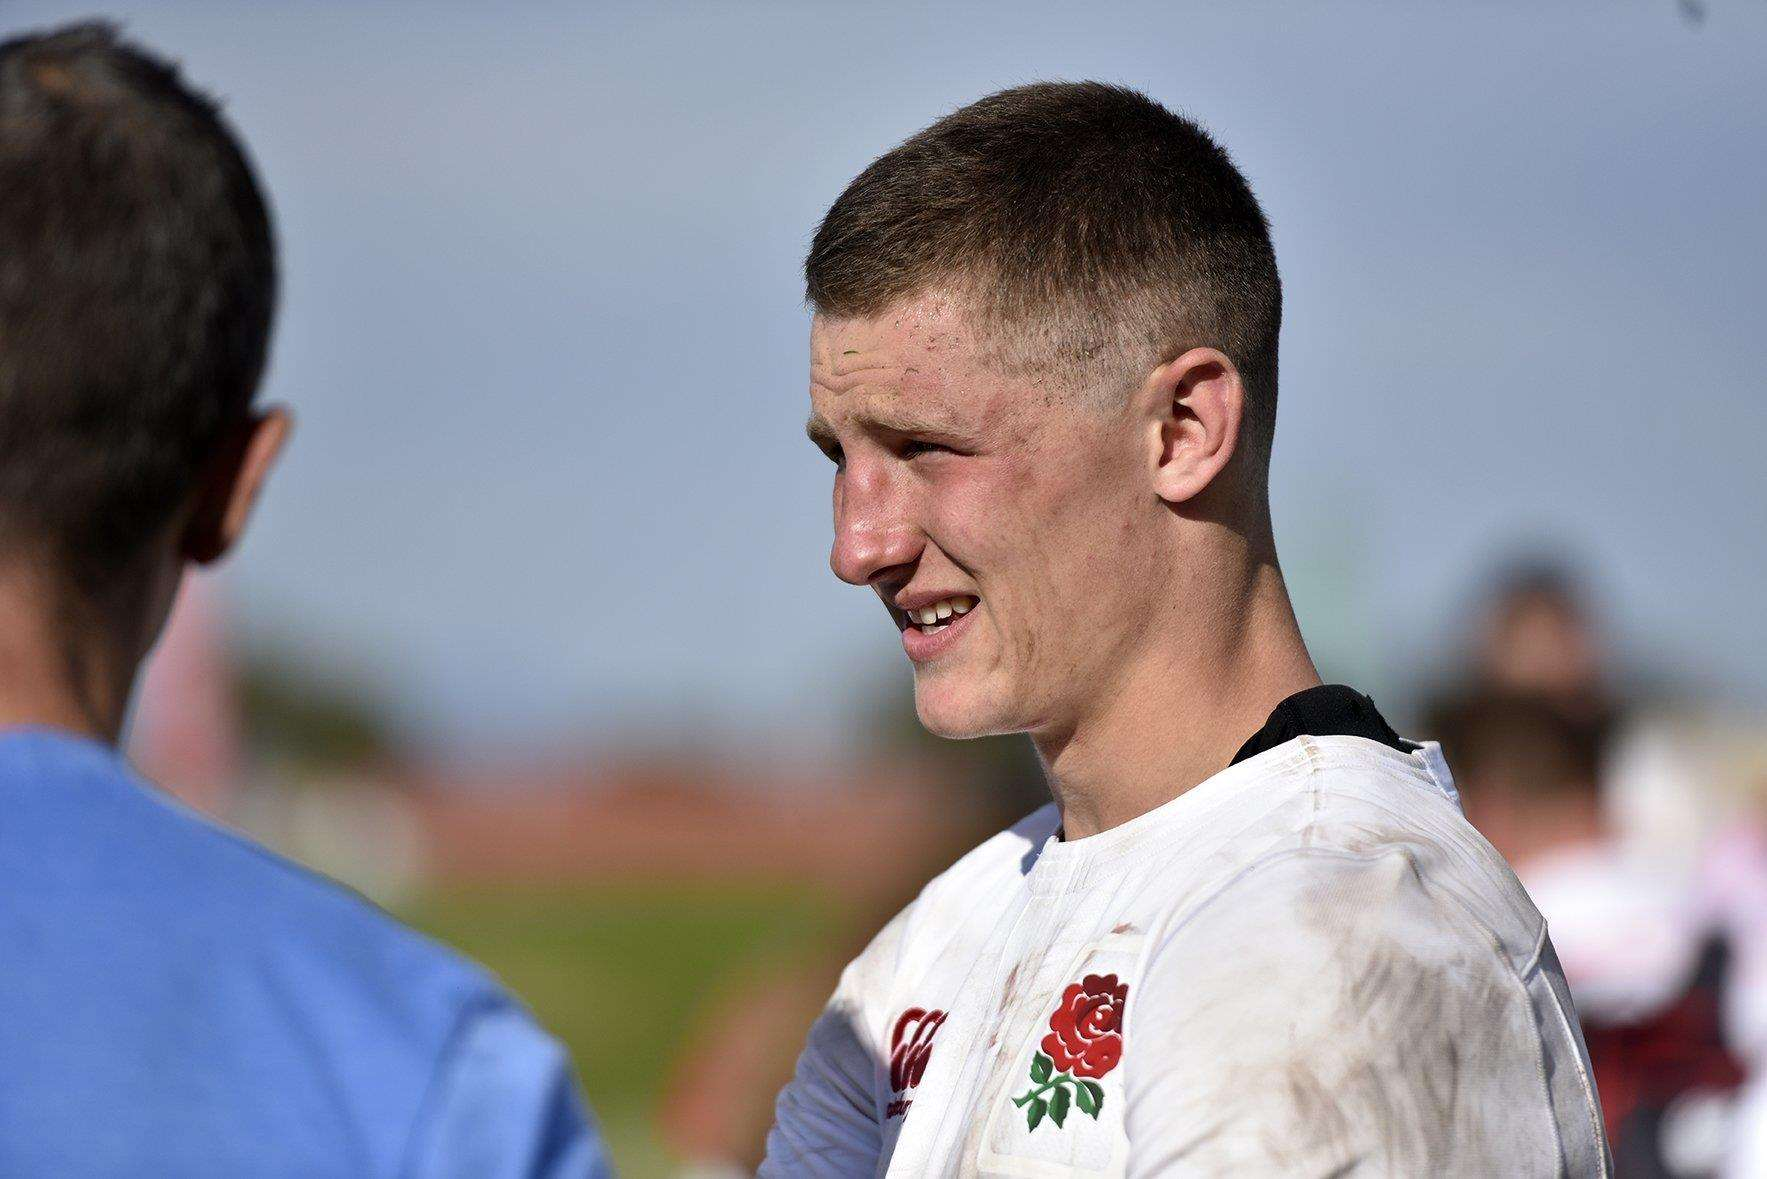 Former Cambridge Rugby Club mini and youth player Fraser Dingwall in action for England. Picture: David Spink/RFU.